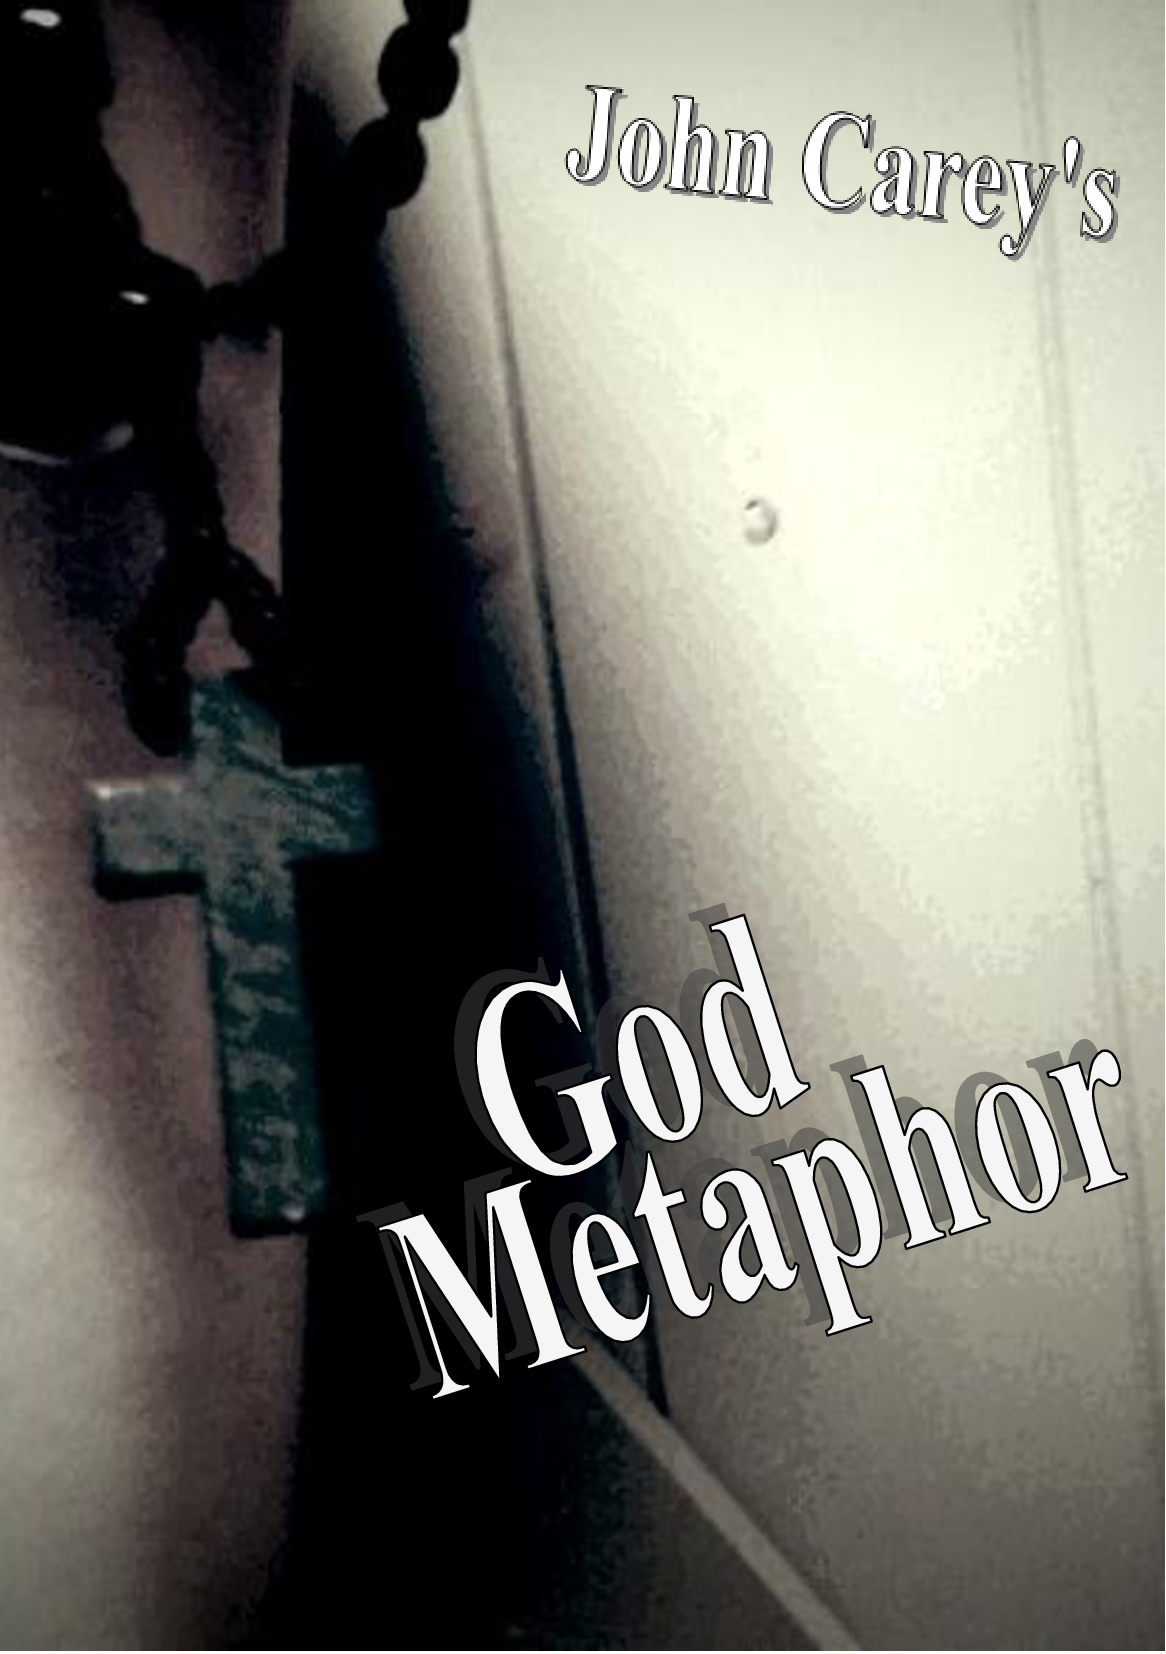 God Metaphor! My second 'experimental' novella in the Broken Polemic series. This one goes on about religion and literary authority.